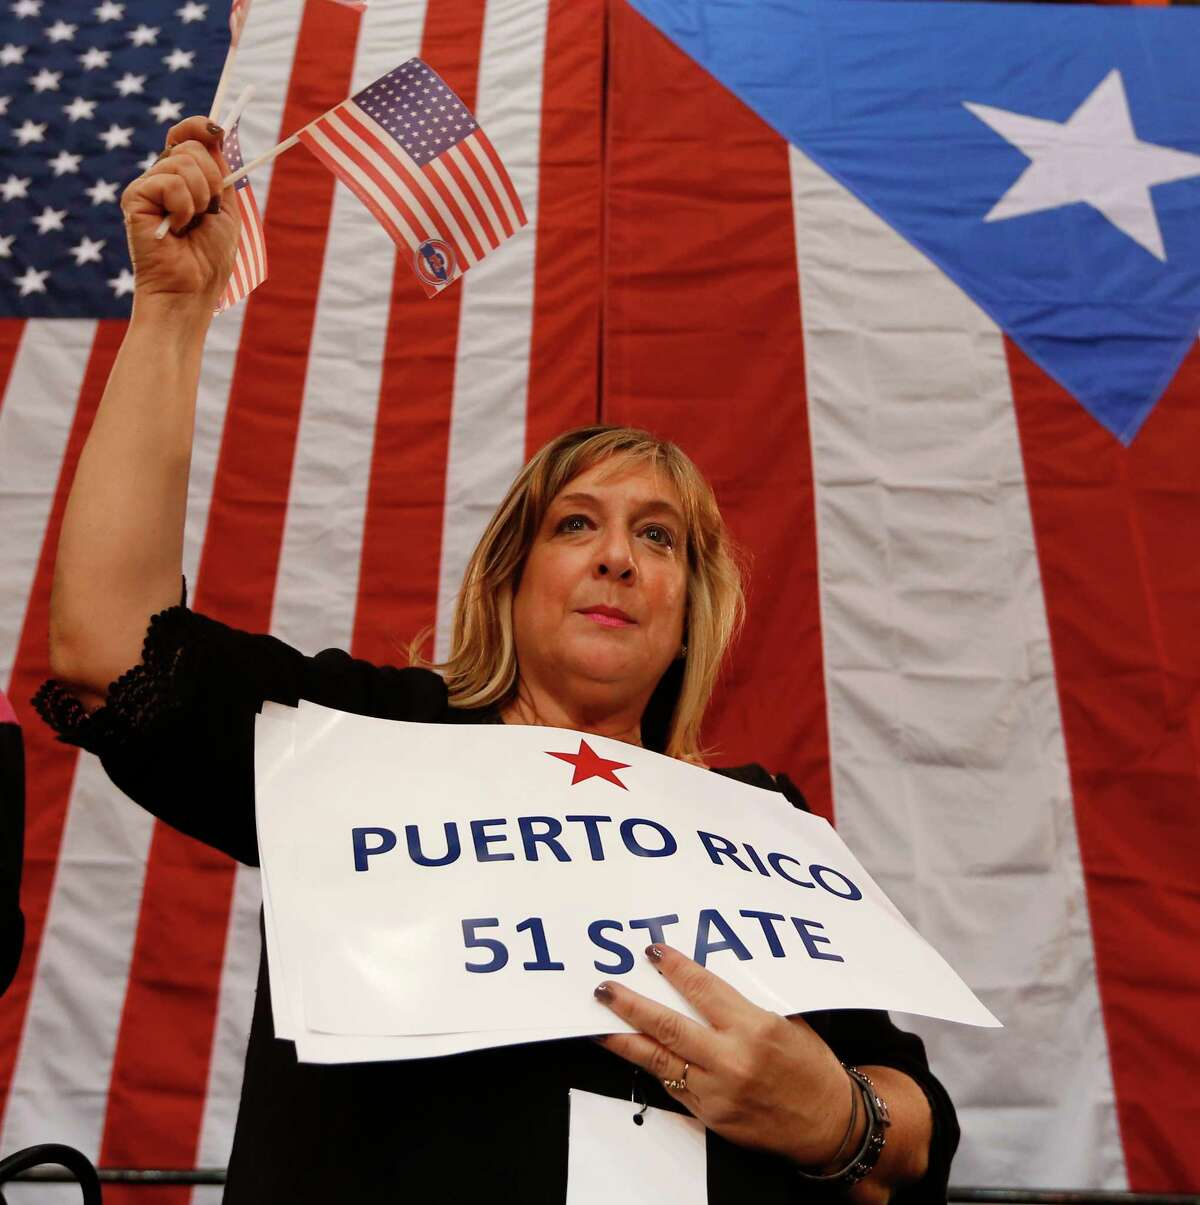 Audience member Arlene Dudeil waves flags during a Republican presidential candidate, Sen. Marco Rubio, R-Fla., rally in Toa Baja, Puerto Rico, Saturday, March 5, 2016.